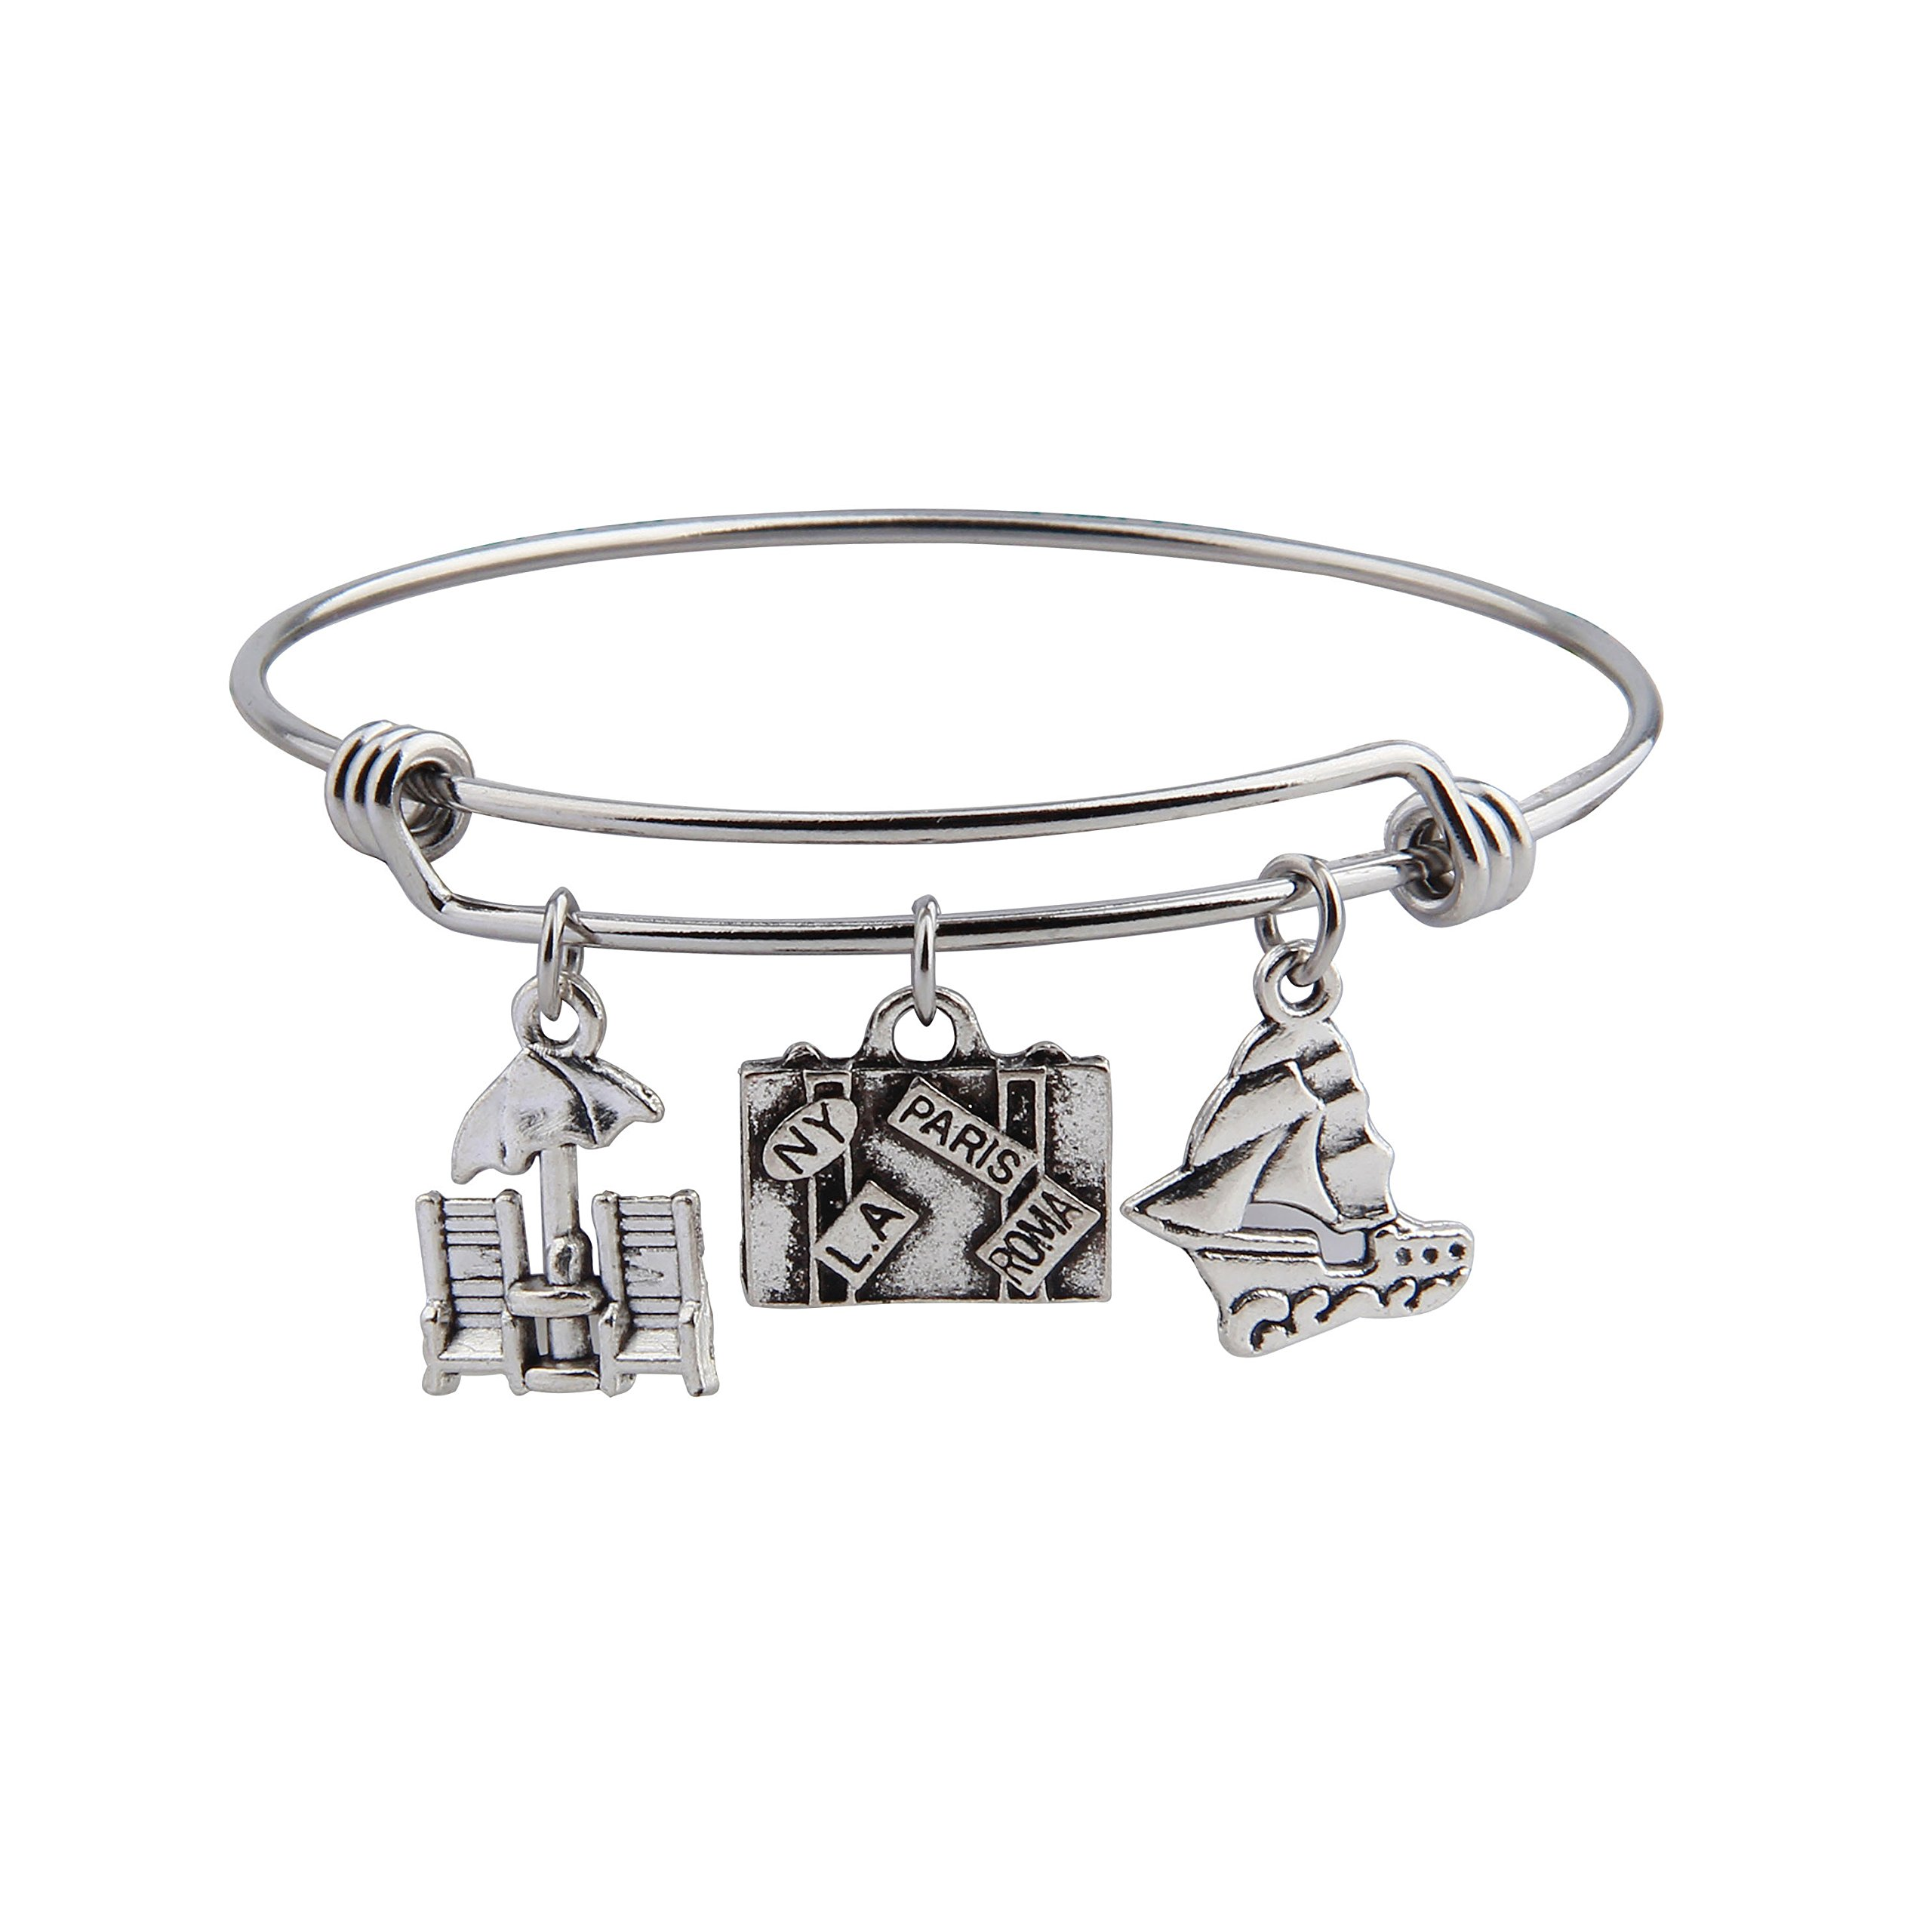 KUIYAI Retriment Travel Bracelets Sailboat Bangle Suitcase Charms Gift for Travelers (Traveler bracelet)